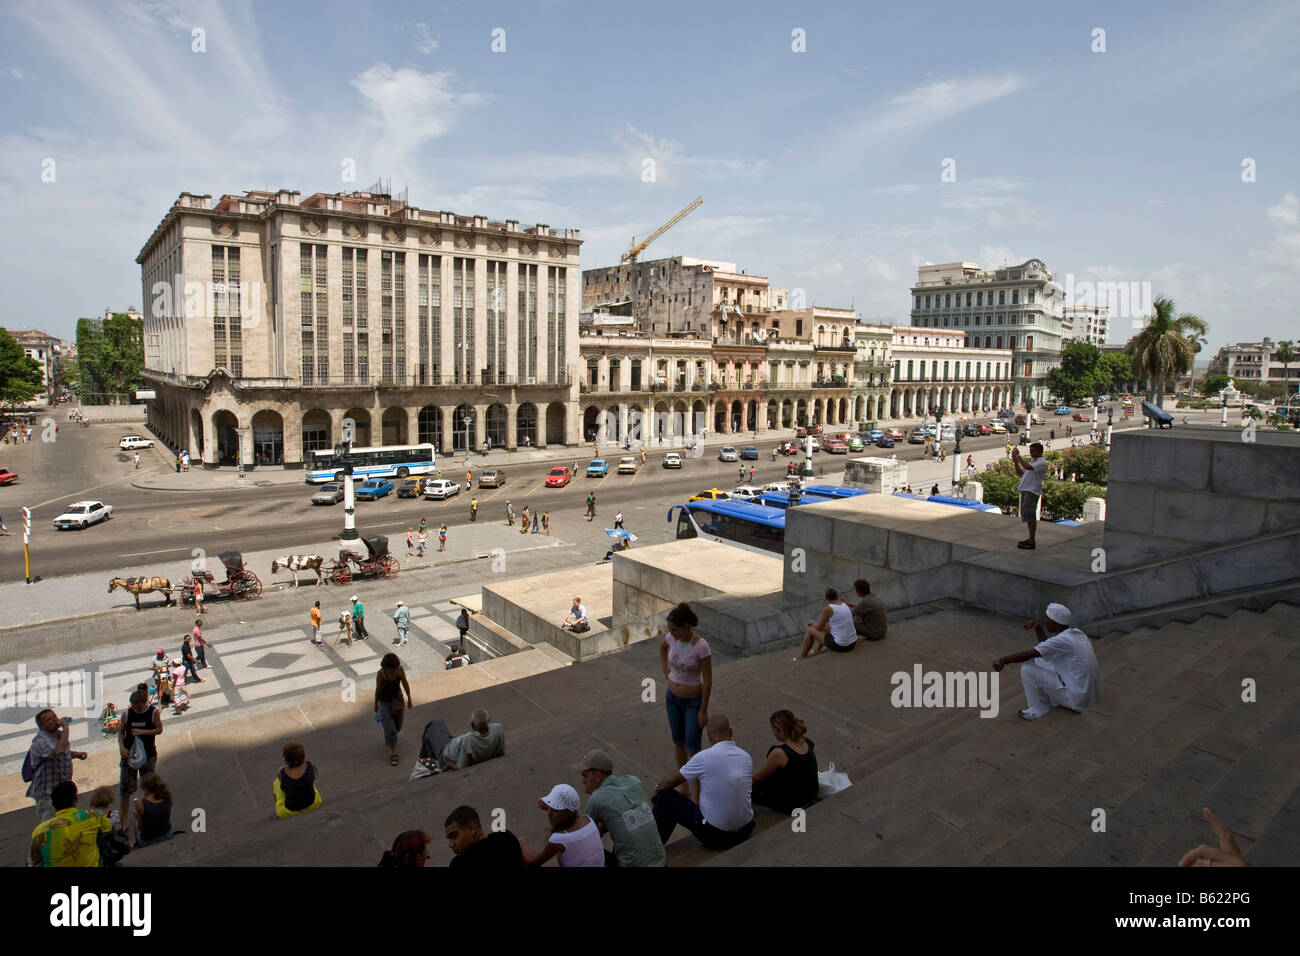 Cubans sitting on the stairs leading to the Capitol, Parque Central on the Boulevard Paseo de Marti, square by the Stock Photo